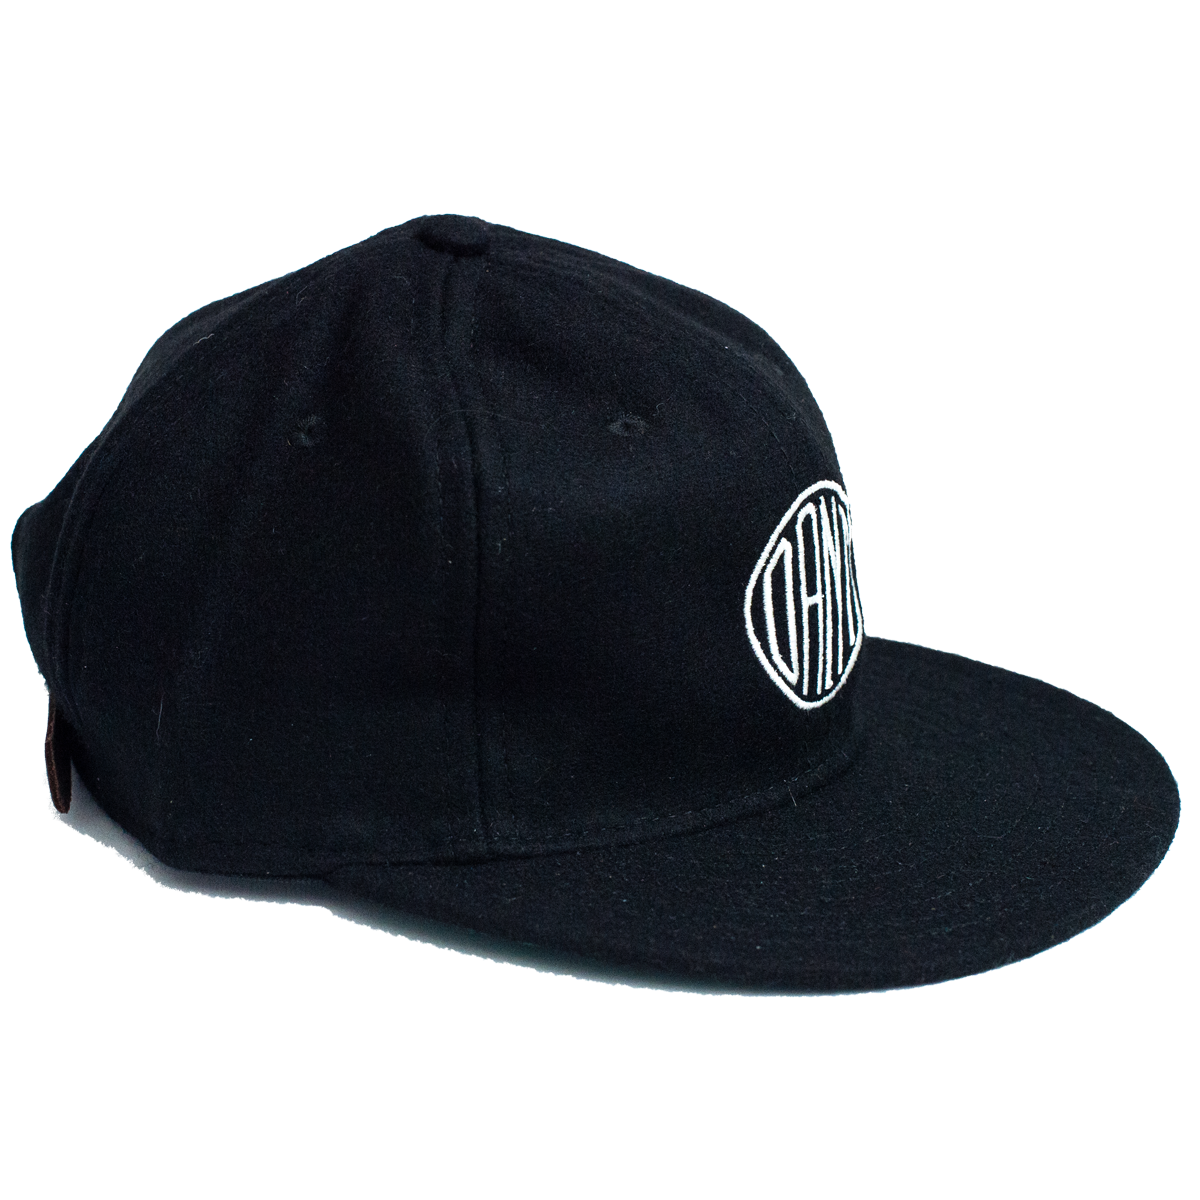 Dant Monogram Hat - Black